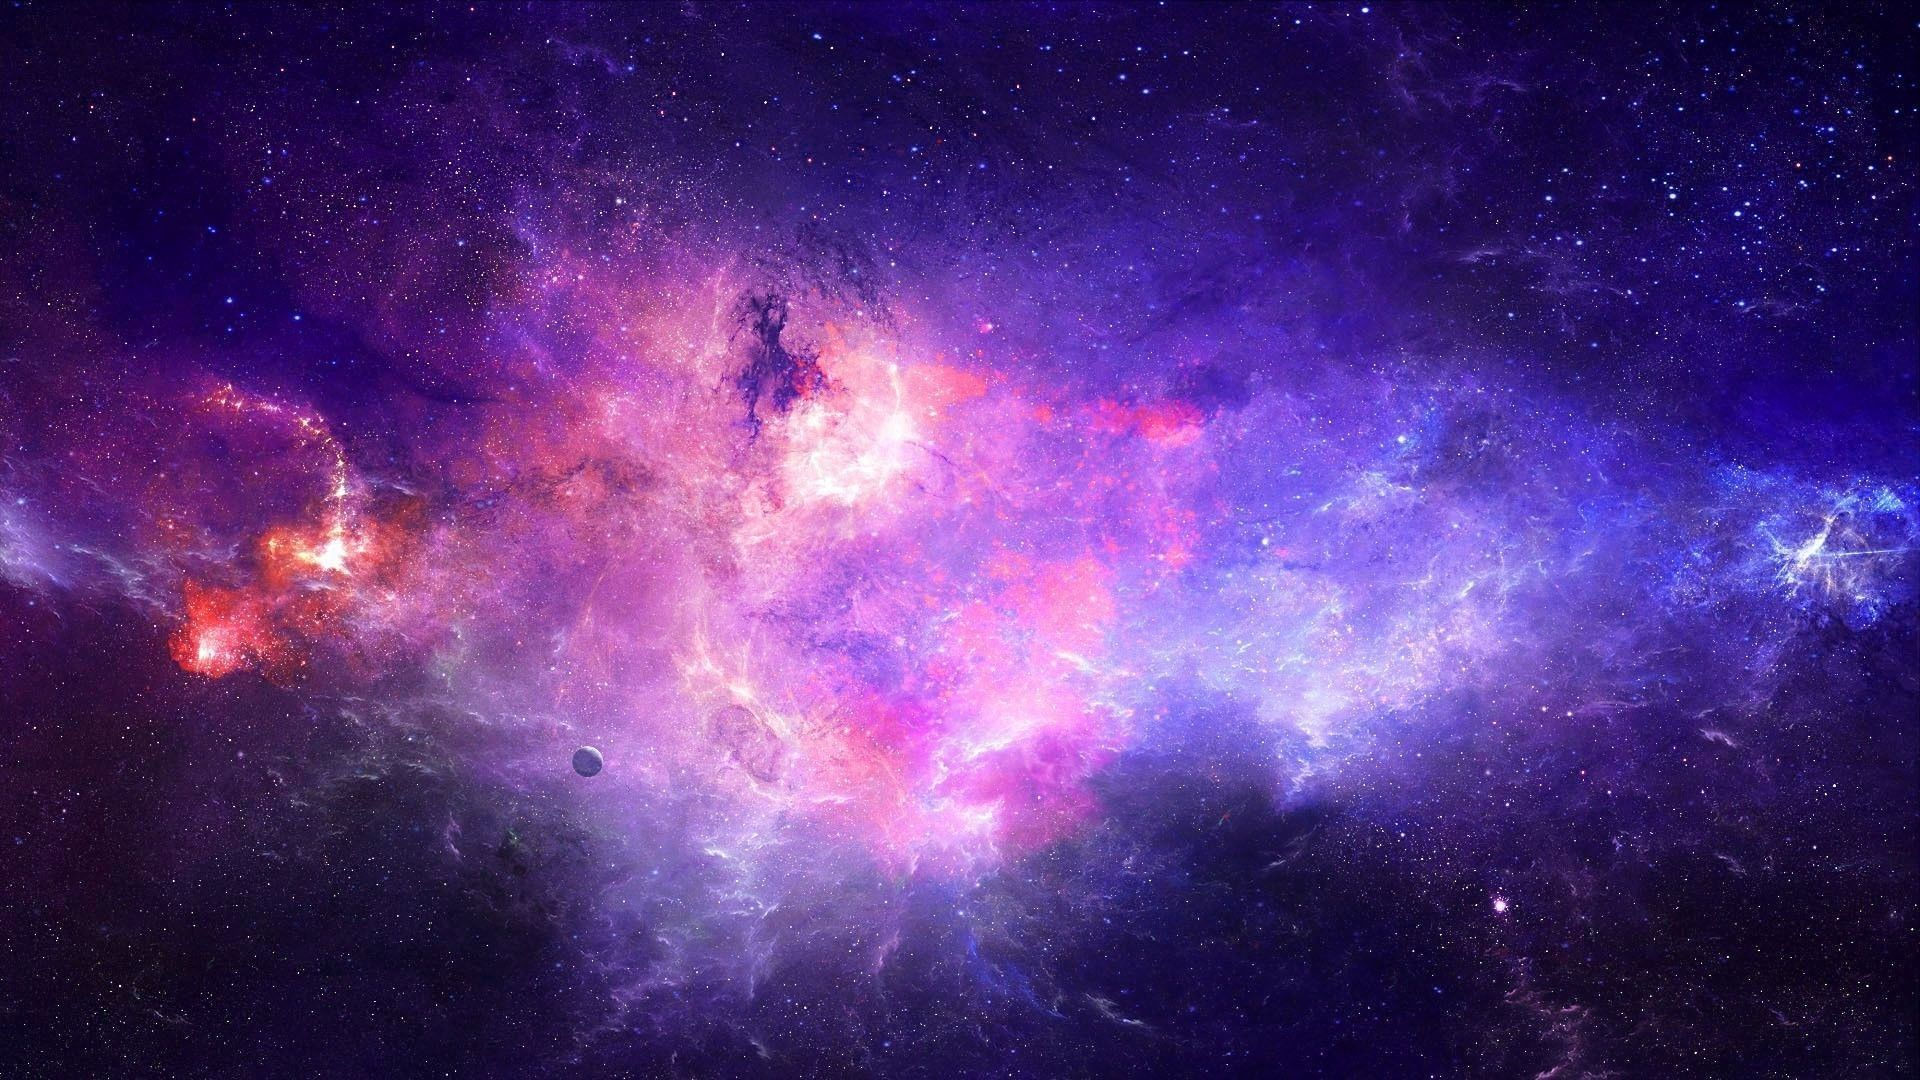 1920x1080 1920x1080 Galaxy Backgrounds 1920x1080 For Phones Purple Galaxy Wallpaper Galaxy Wallpaper Galaxy Images